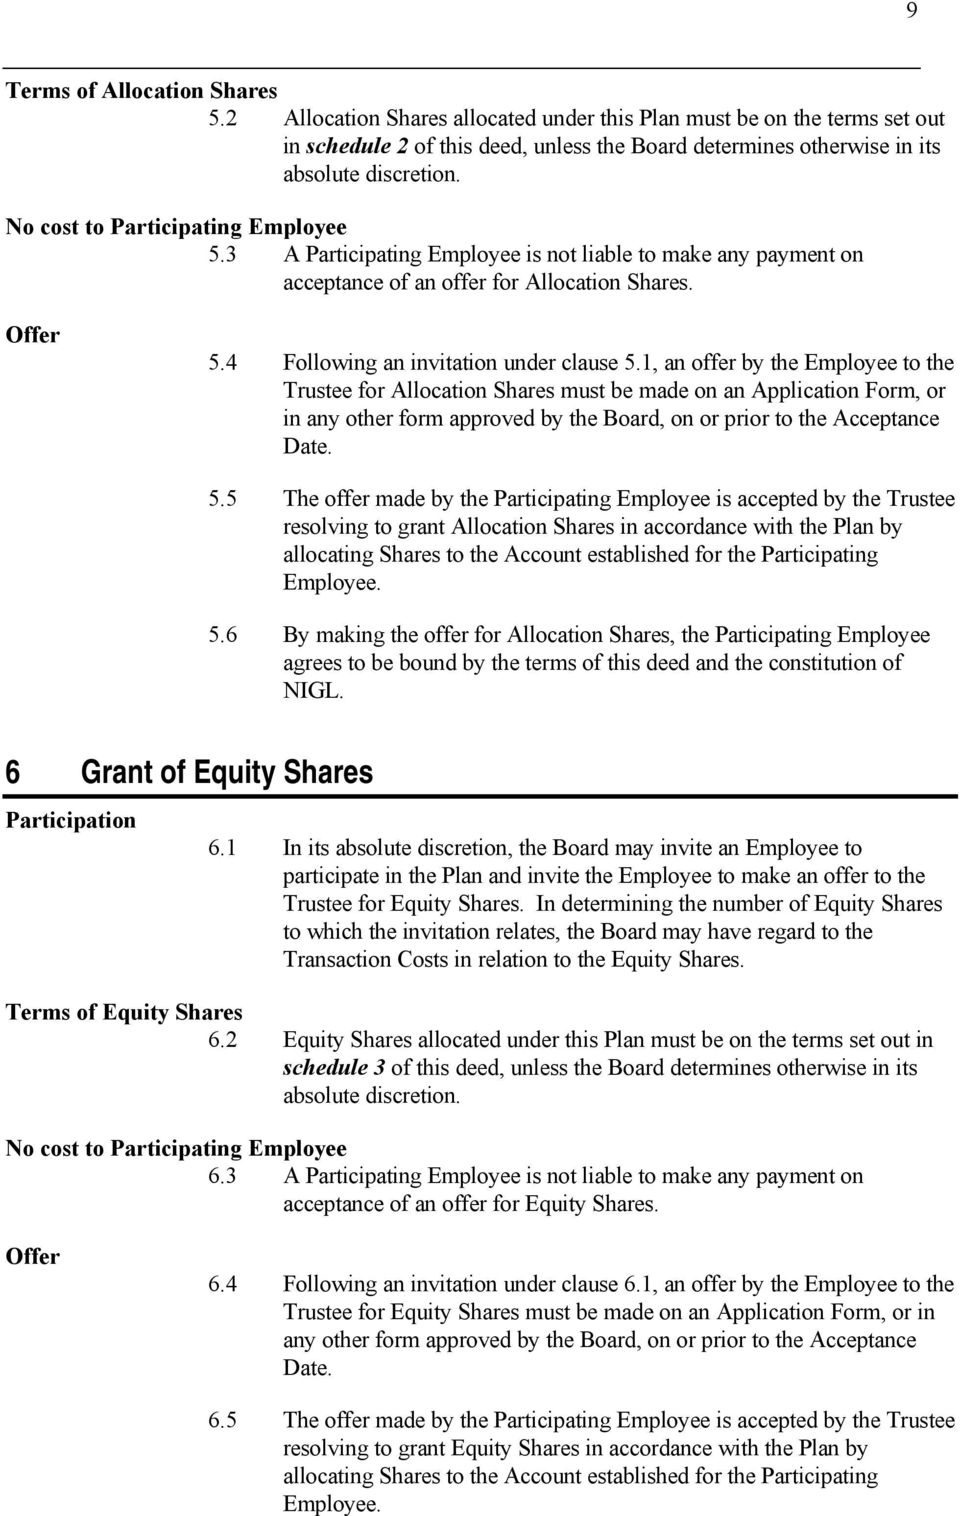 1, an offer by the Employee to the Trustee for Allocation Shares must be made on an Application Form, or in any other form approved by the Board, on or prior to the Acceptance Date. 5.